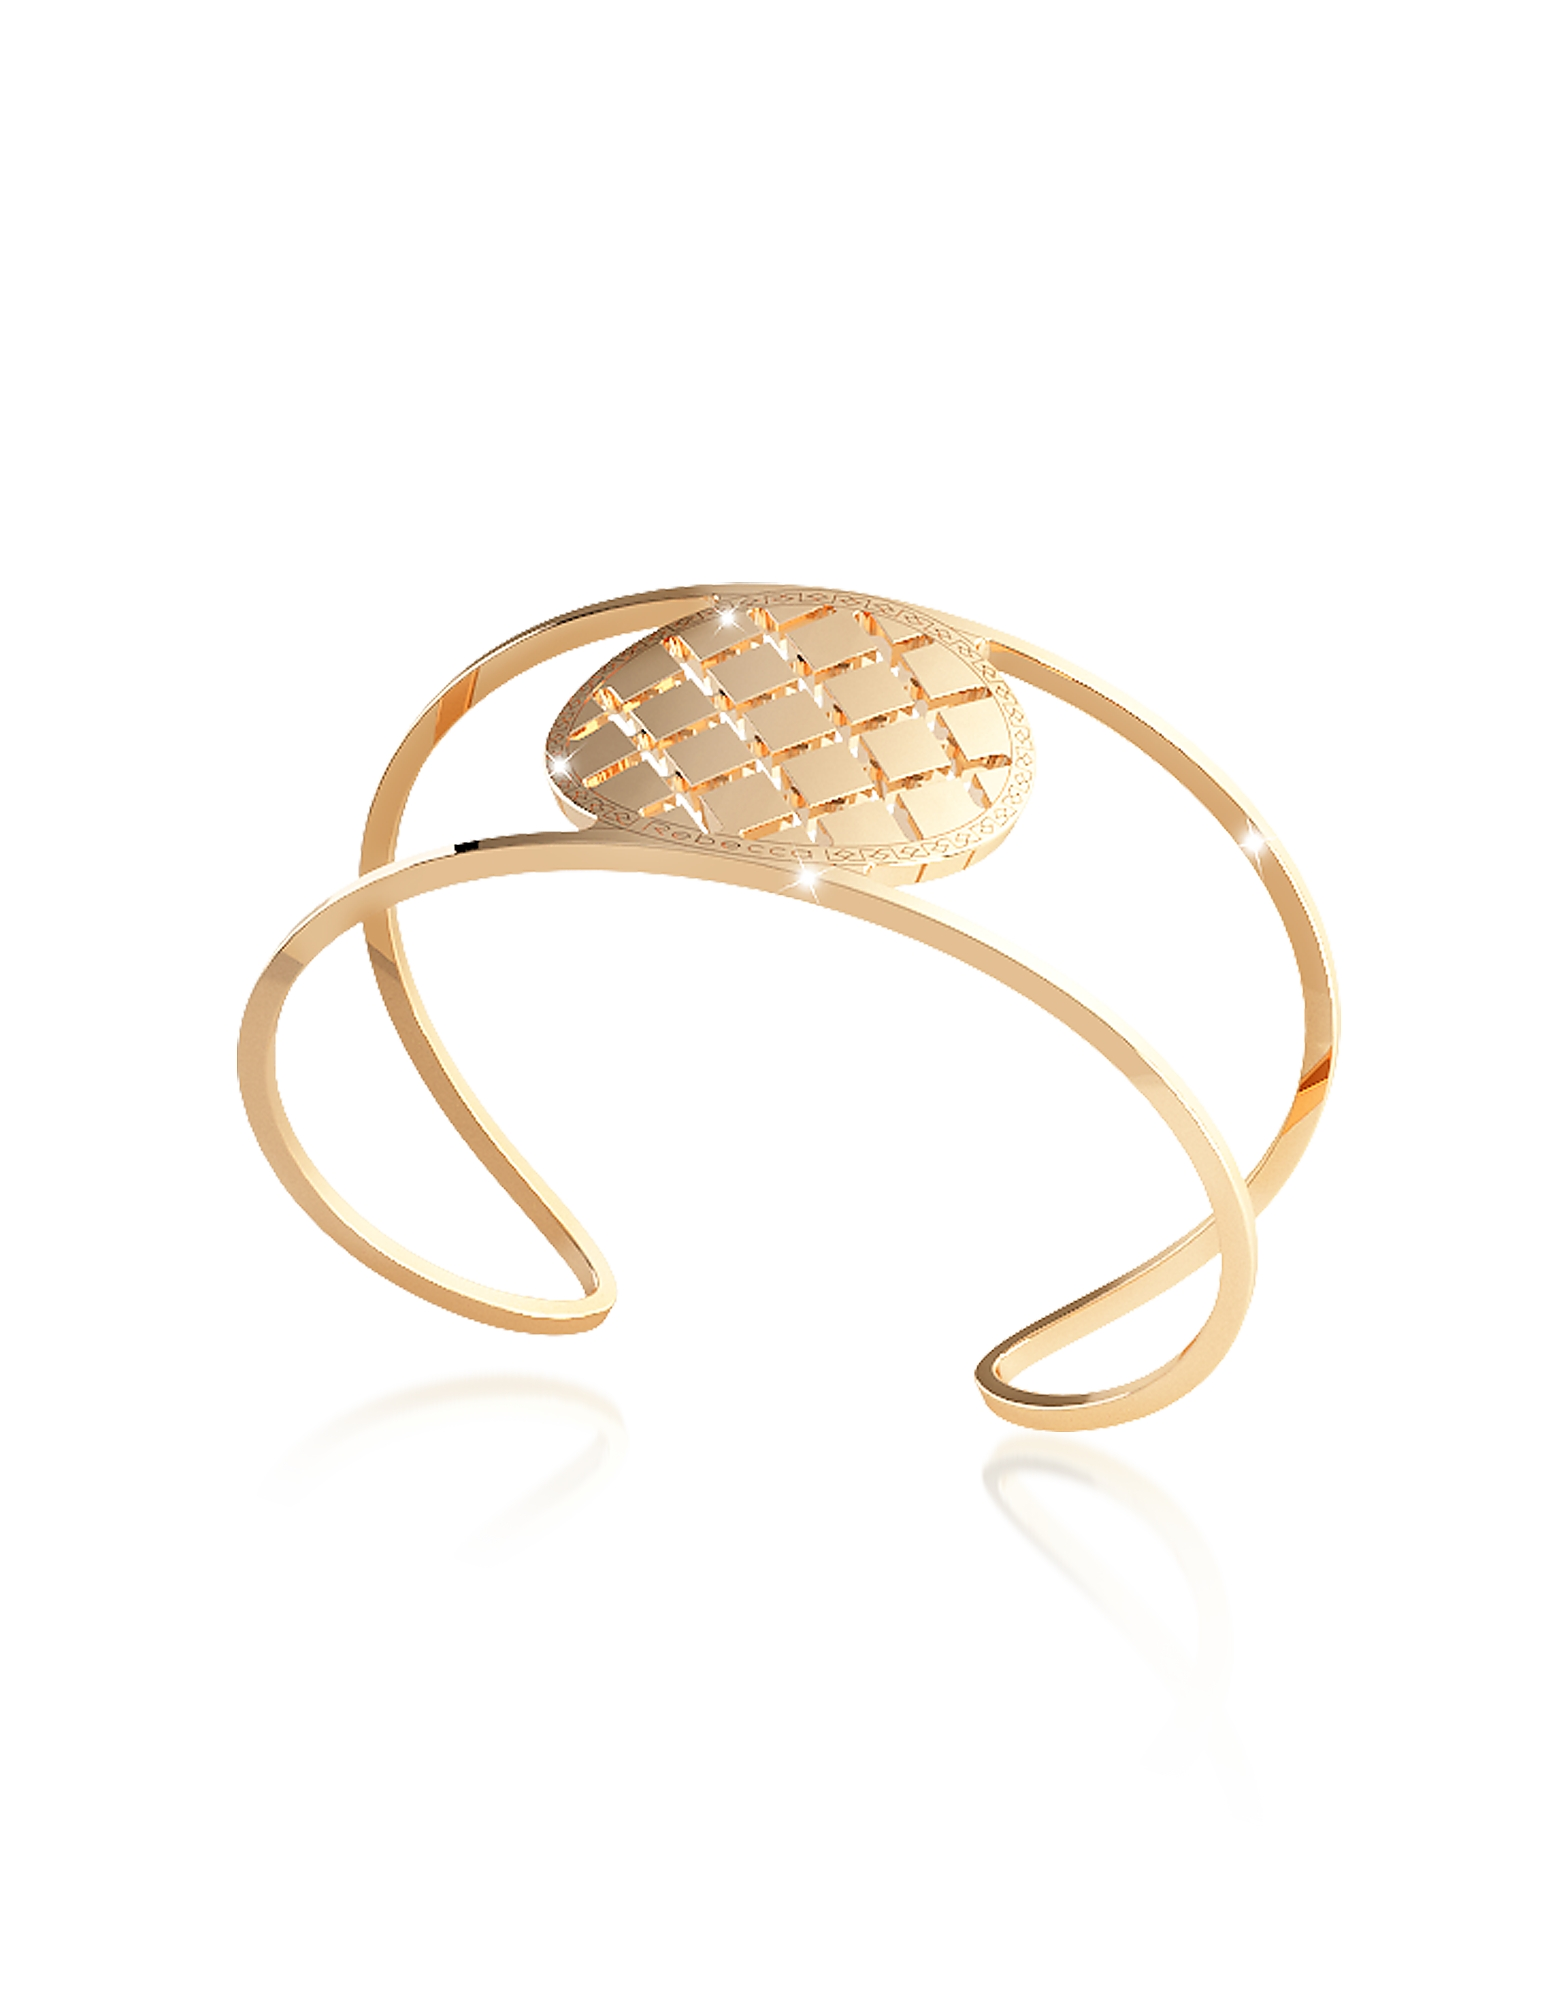 Rebecca Bracelets, Melrose Yellow Gold Over Bronze Cuff Bracelet